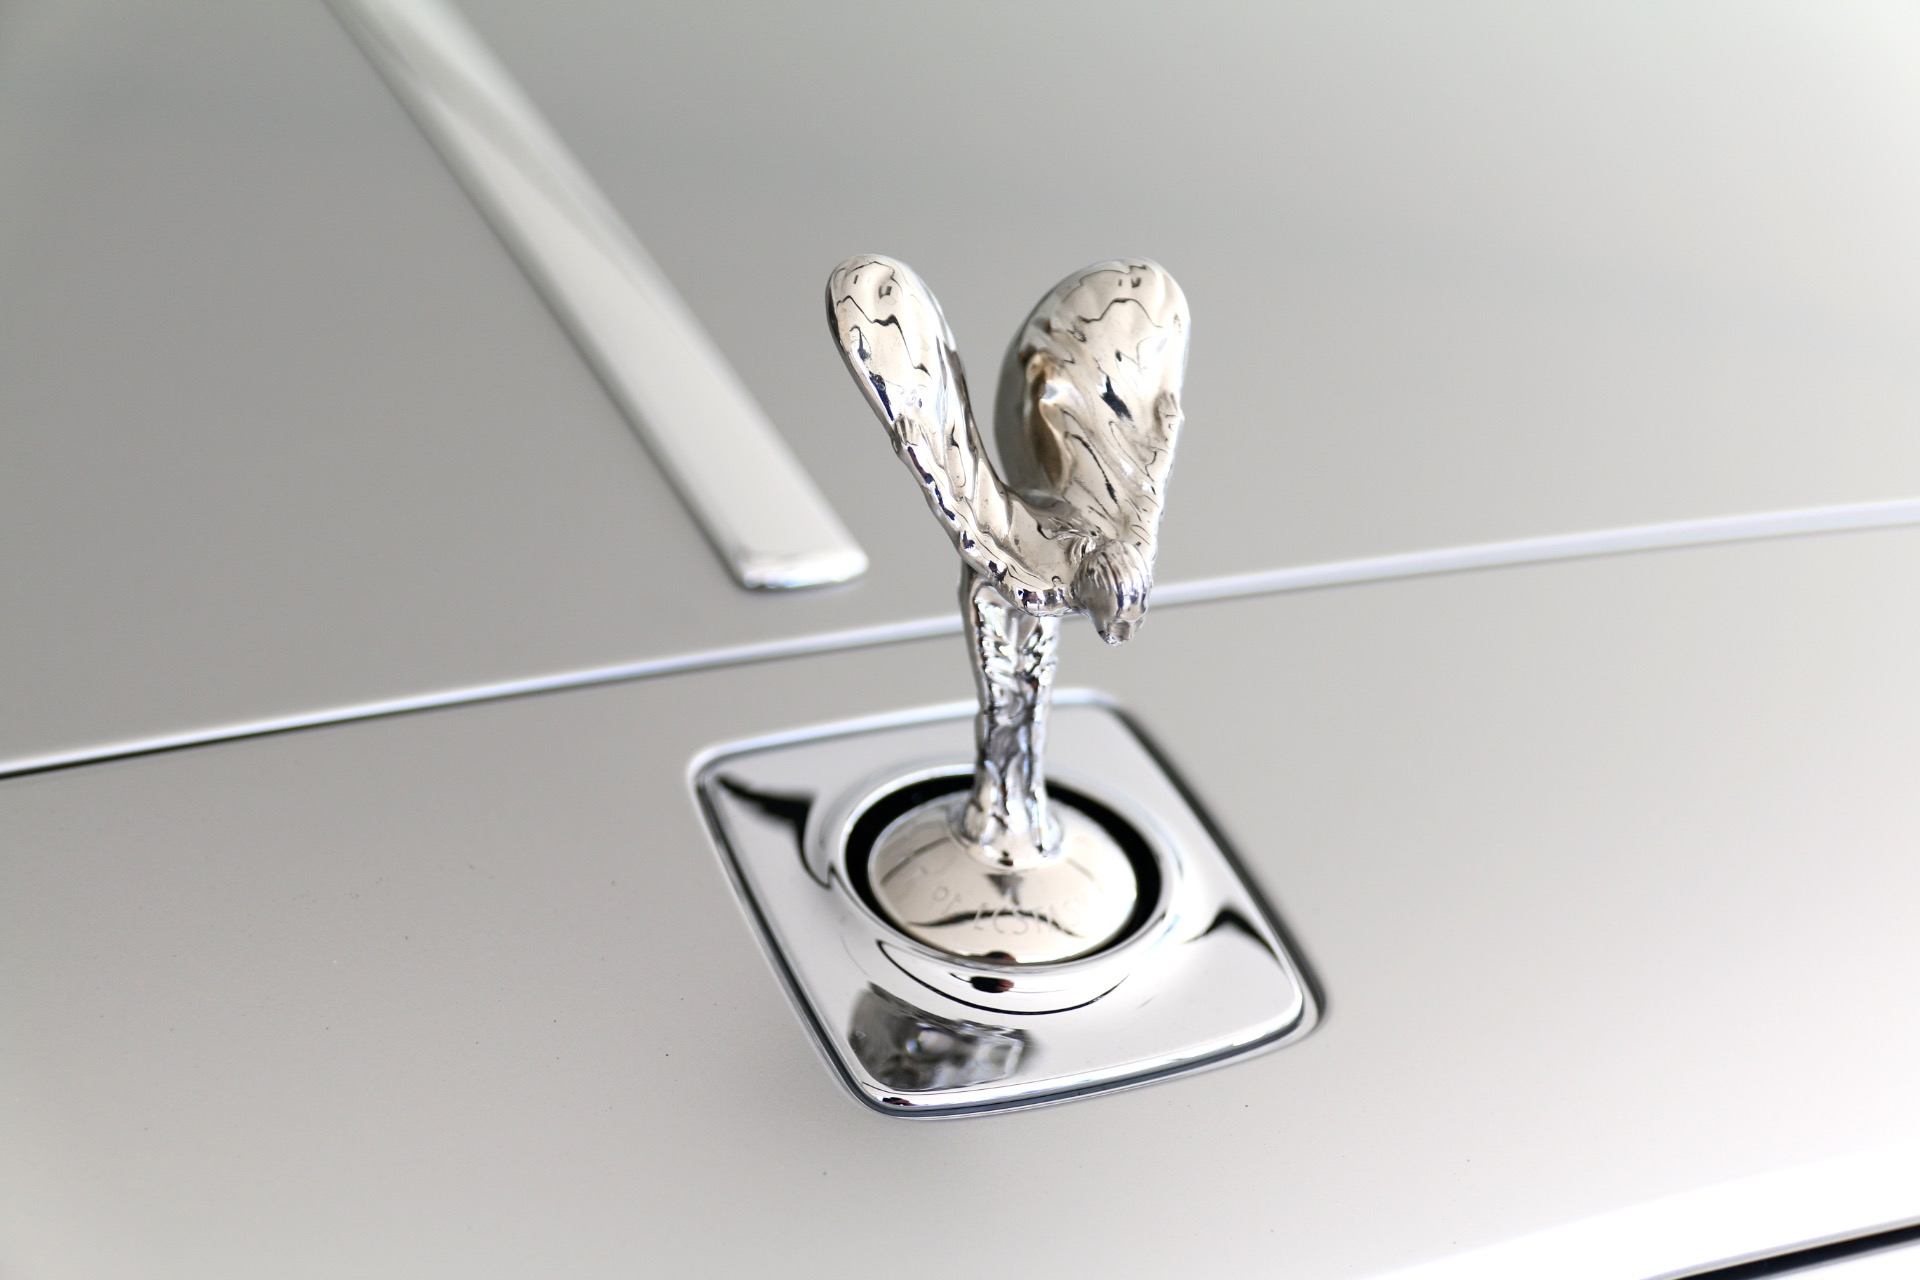 2012 rolls royce ghost stock px50728 for sale near vienna va va used 2012 rolls royce ghost vienna va aloadofball Choice Image